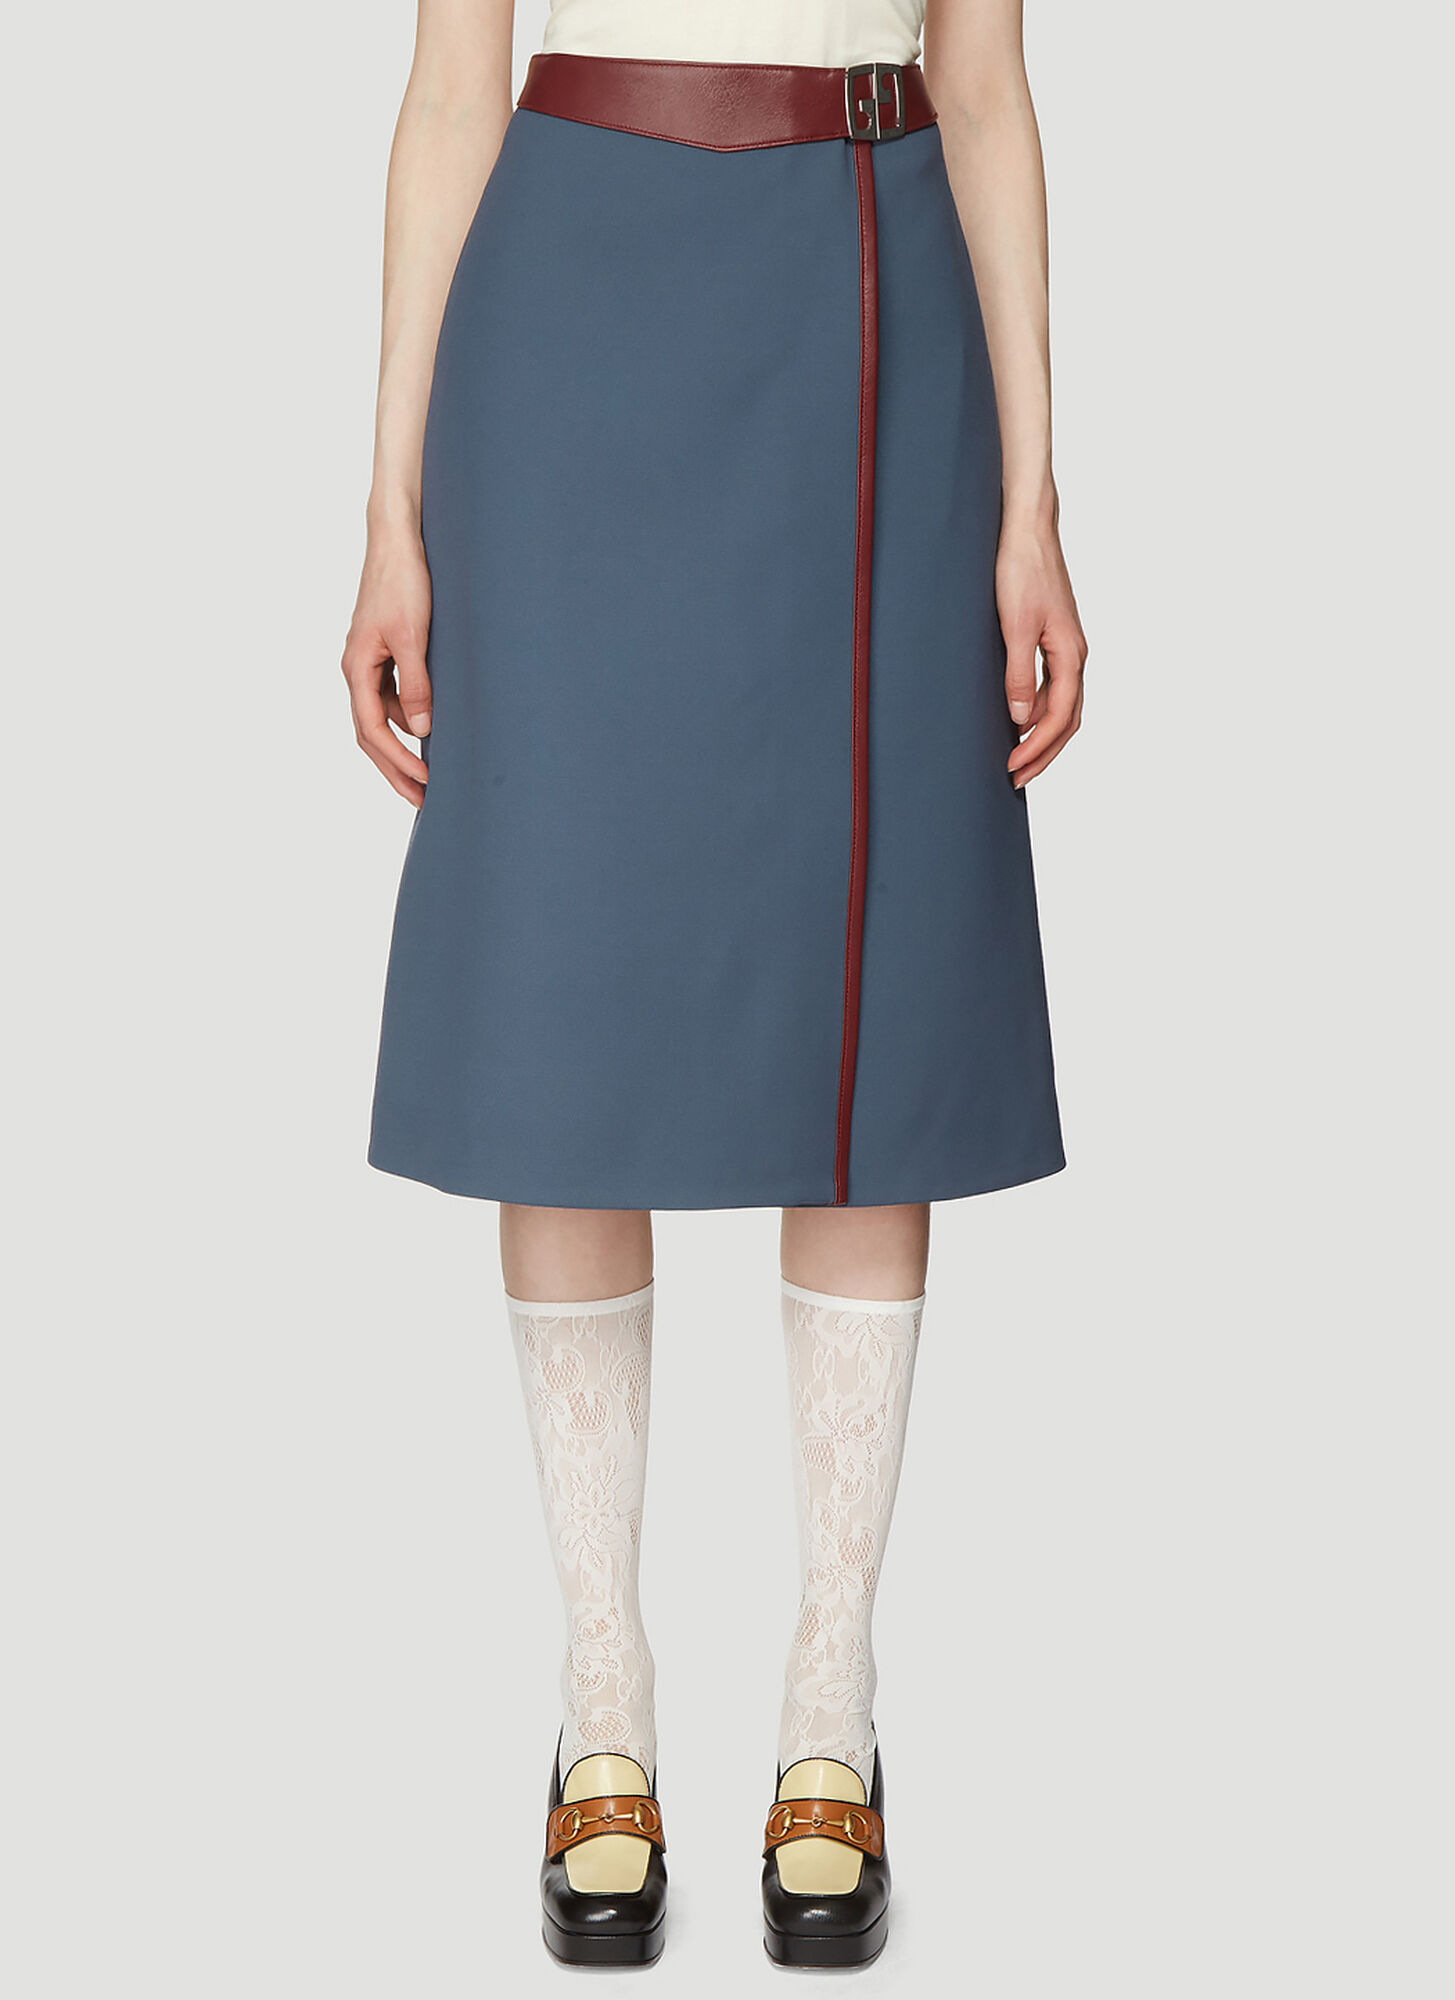 Gucci Leather Trimmed Wrap Skirt in Blue